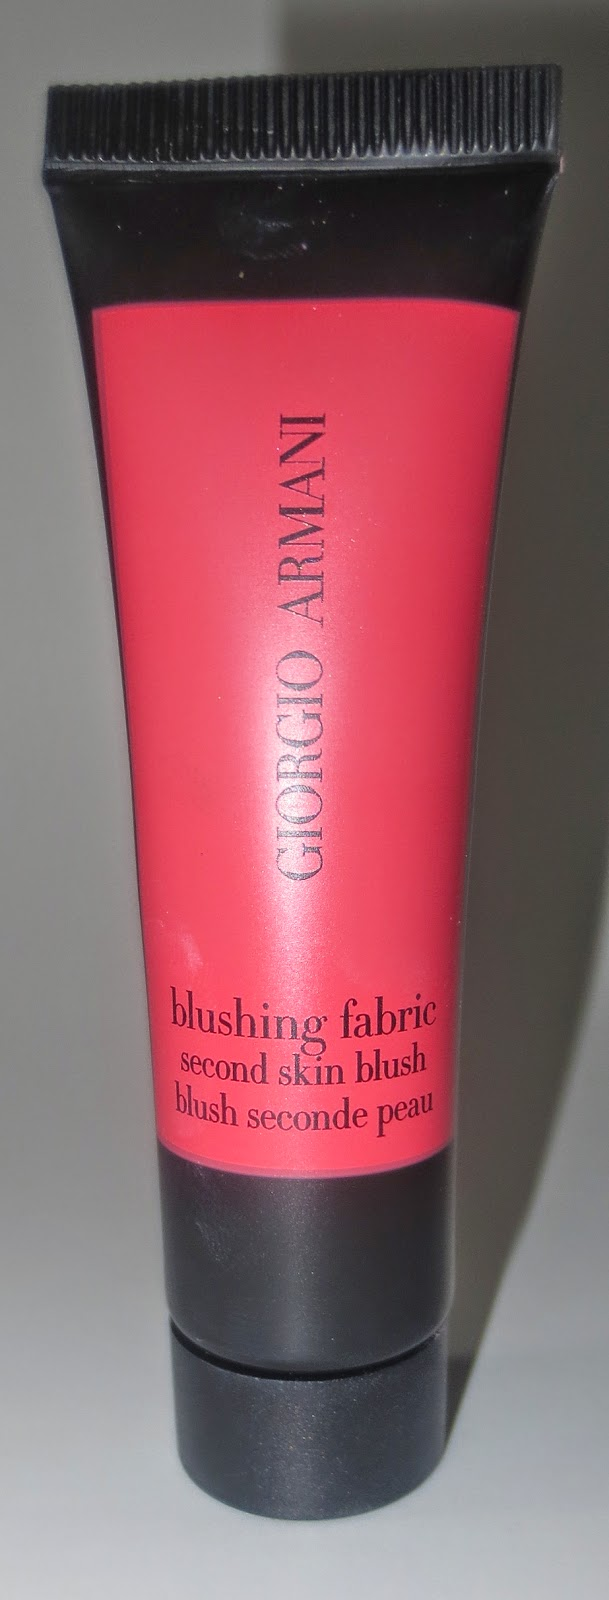 Giorgio Armani Blushing Fabric #1 Translucent Strawberry